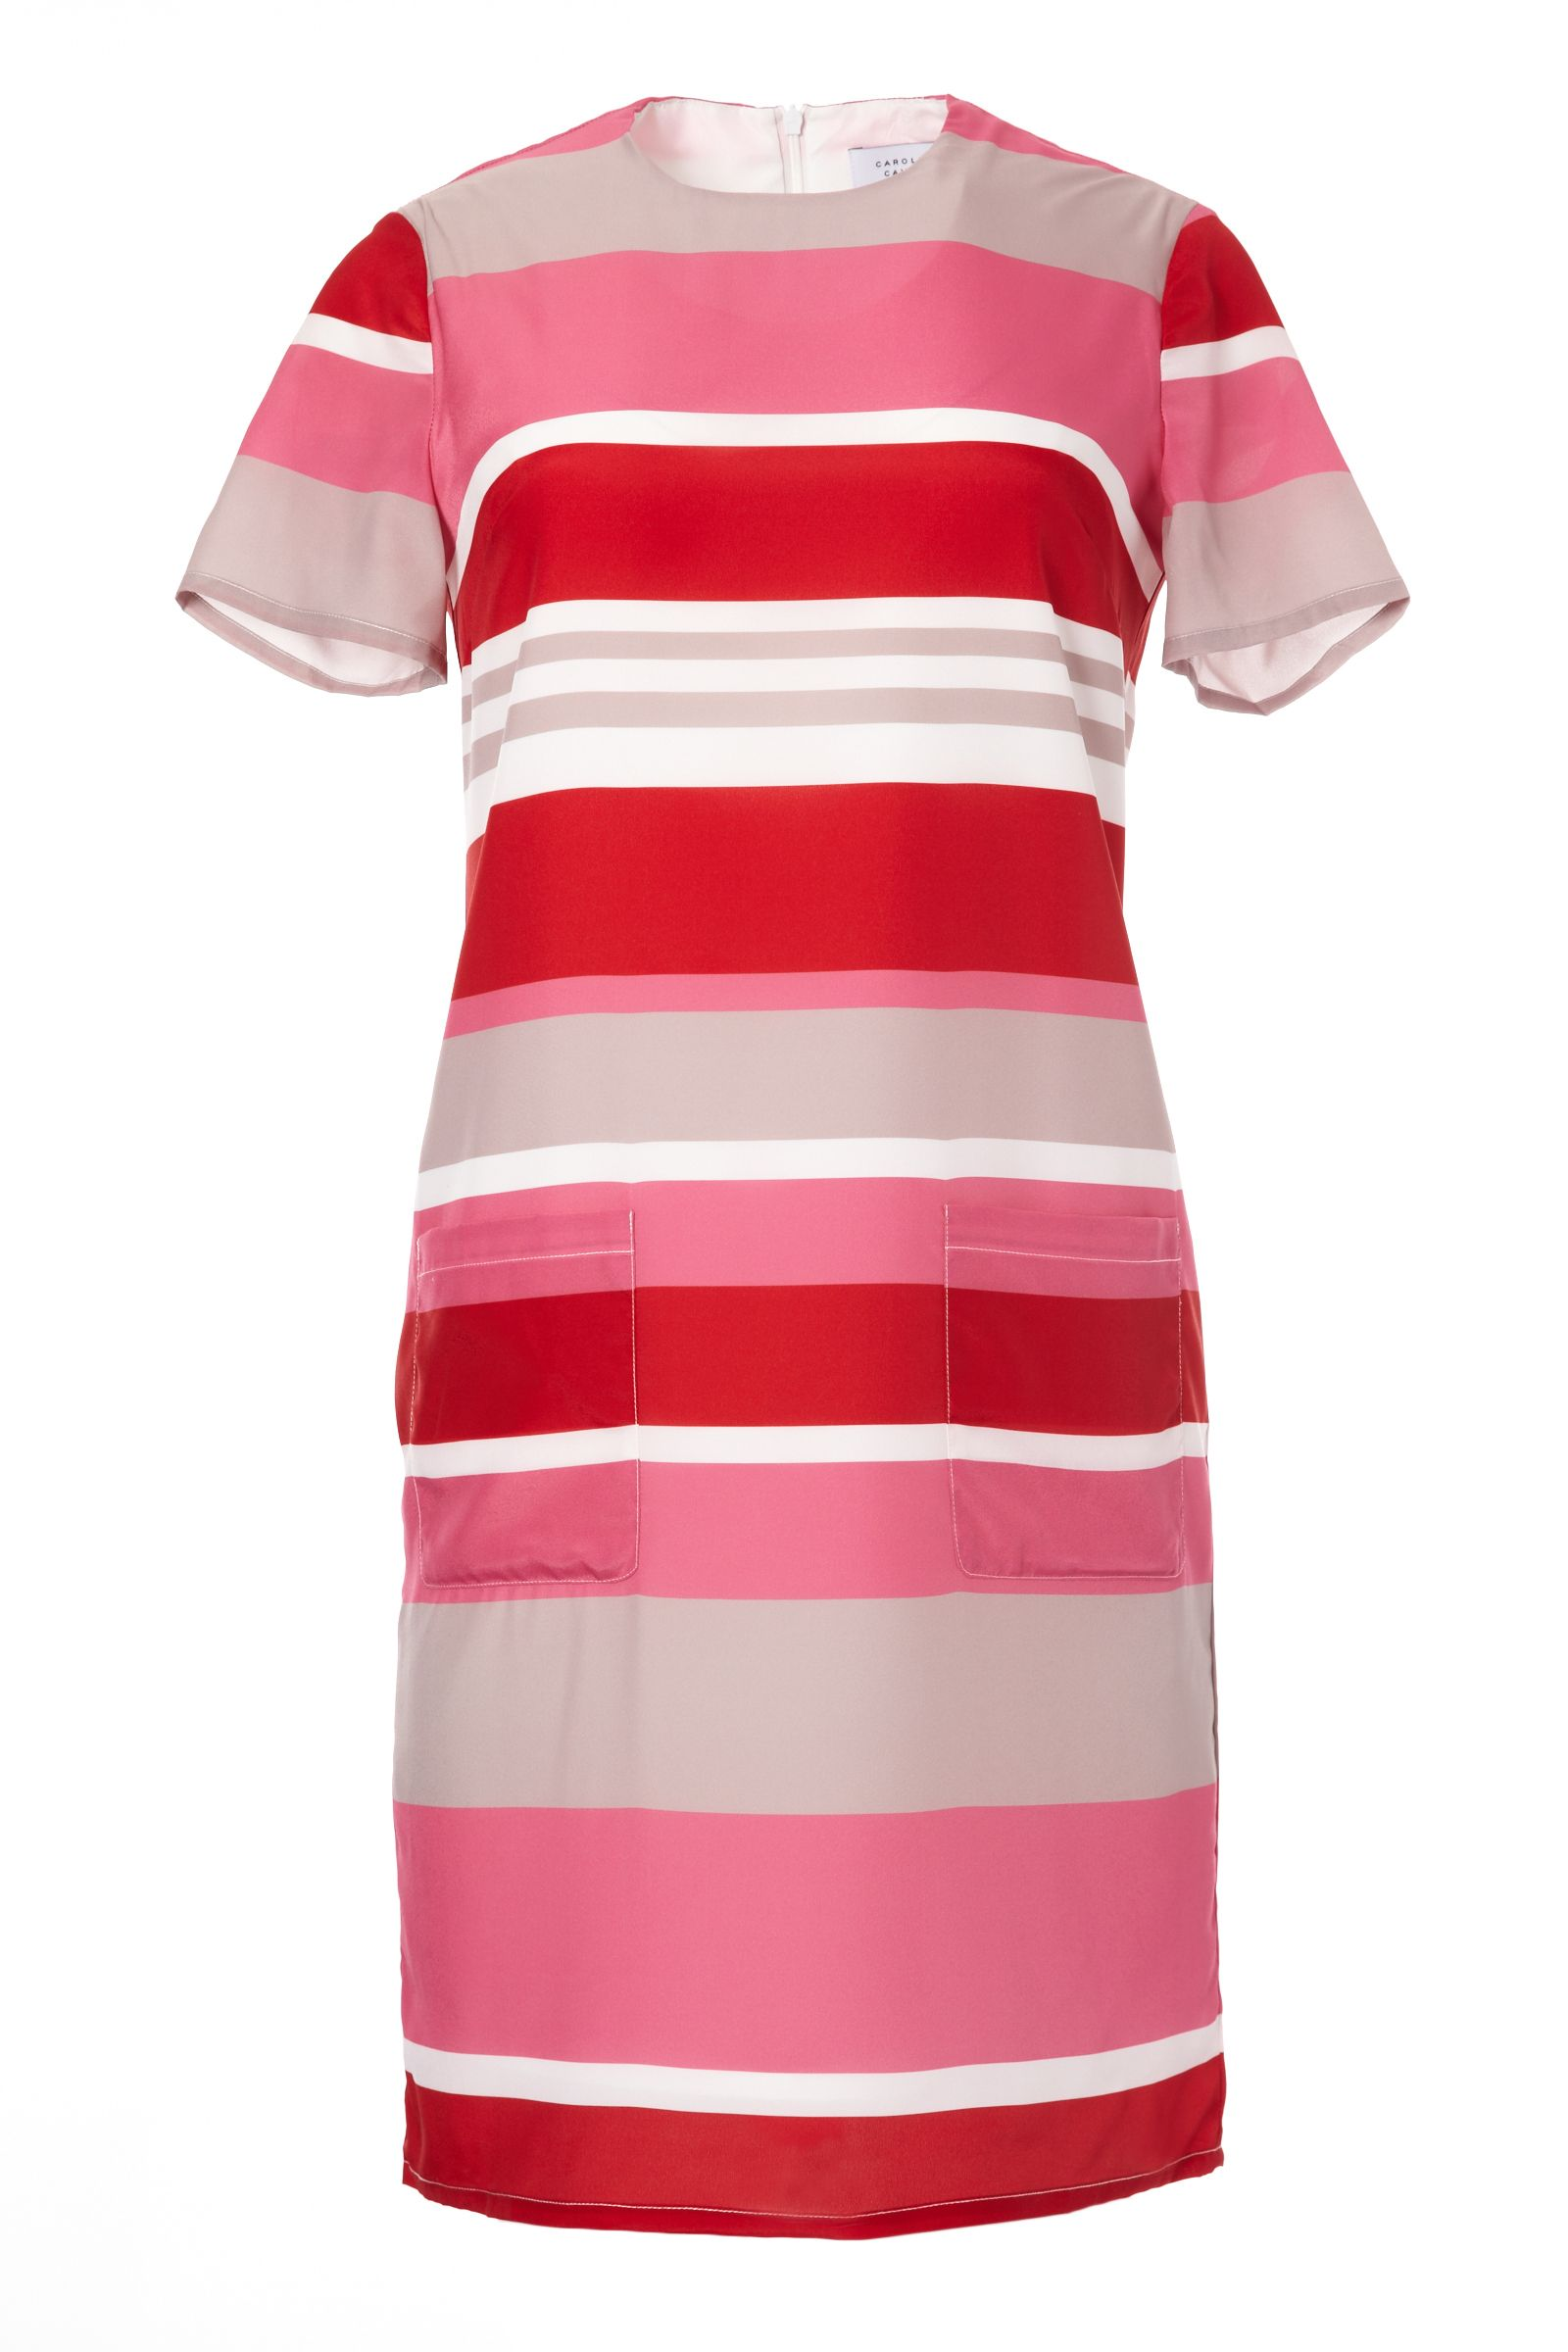 Carolina Cavour Kneelength Loose Fitting Striped Dress, Red